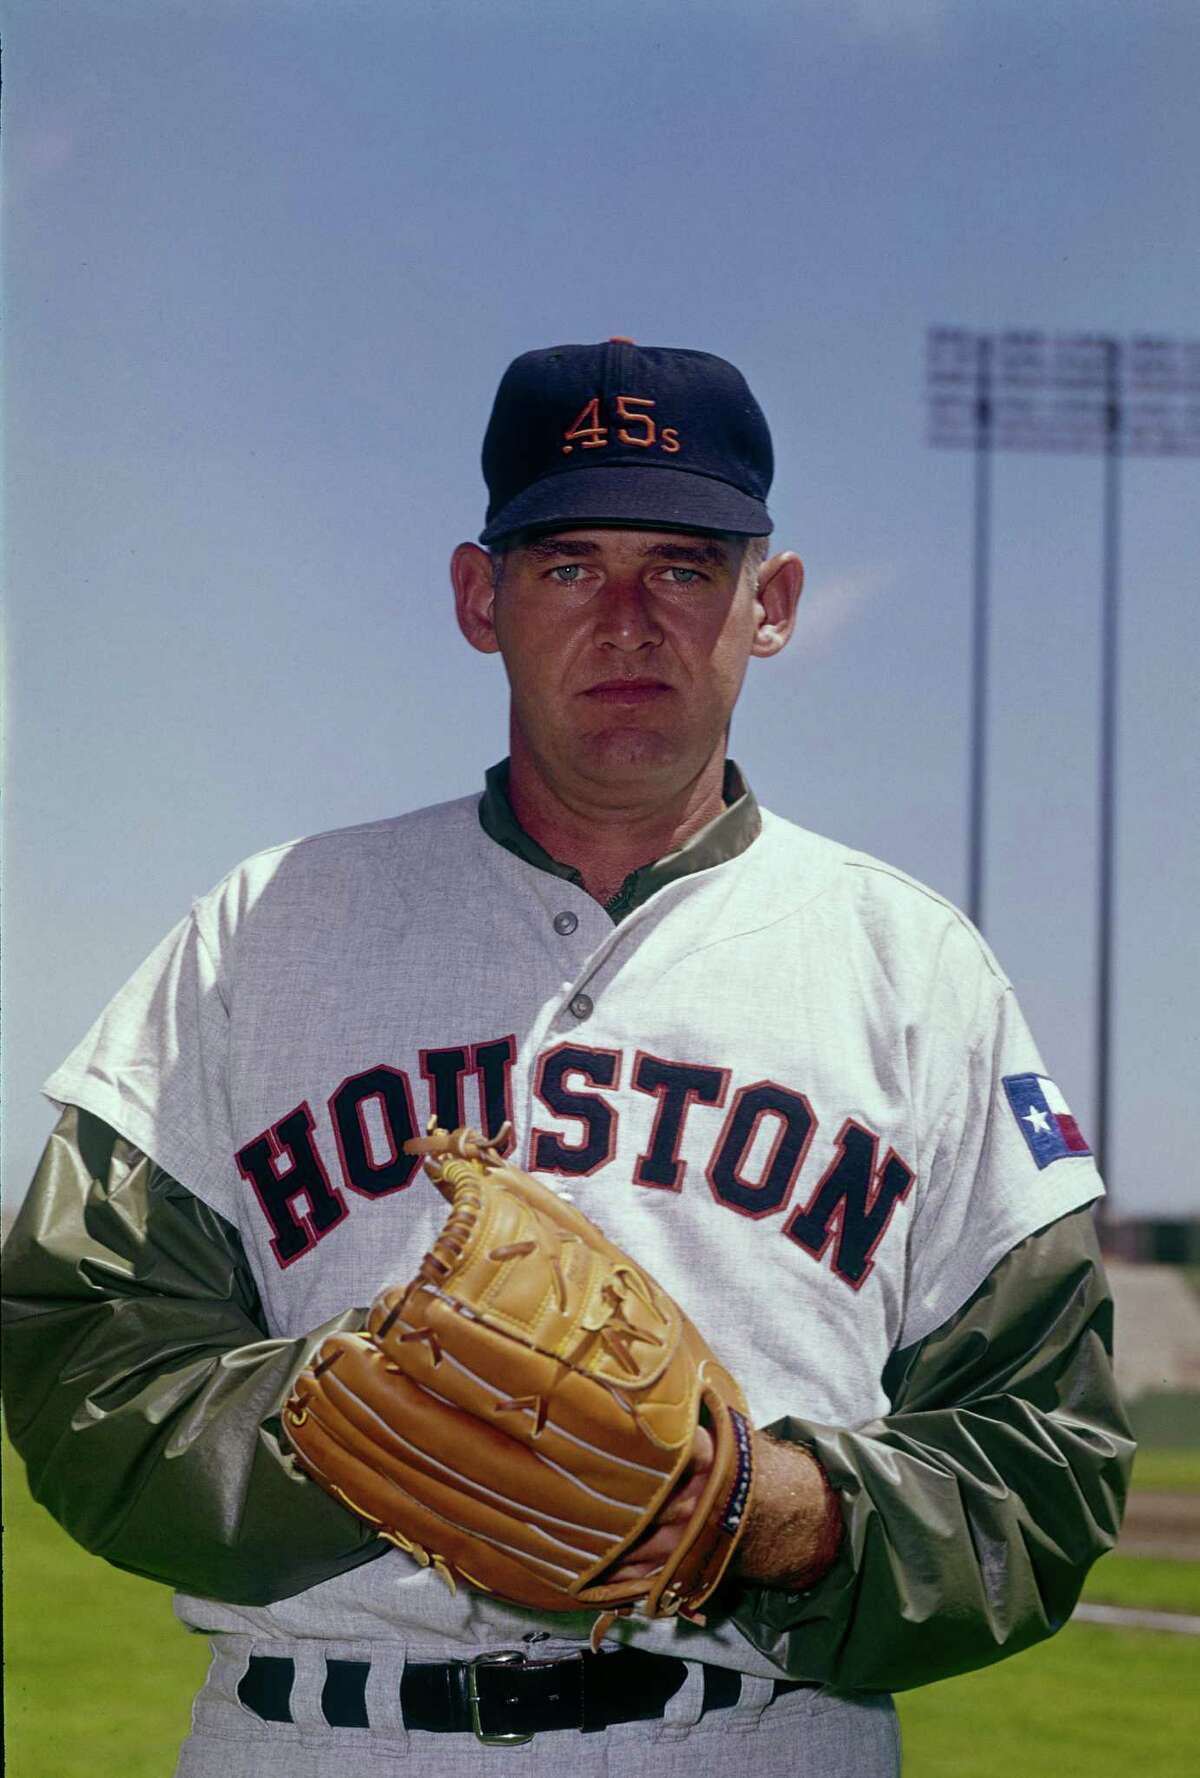 UNSPECIFIED - CIRCA 1964: Don Larsen #31 of the Houston Colt 45 's poses for this photo before a Major League Baseball game circa 1964. Larsen played for Houston from 1964-65.